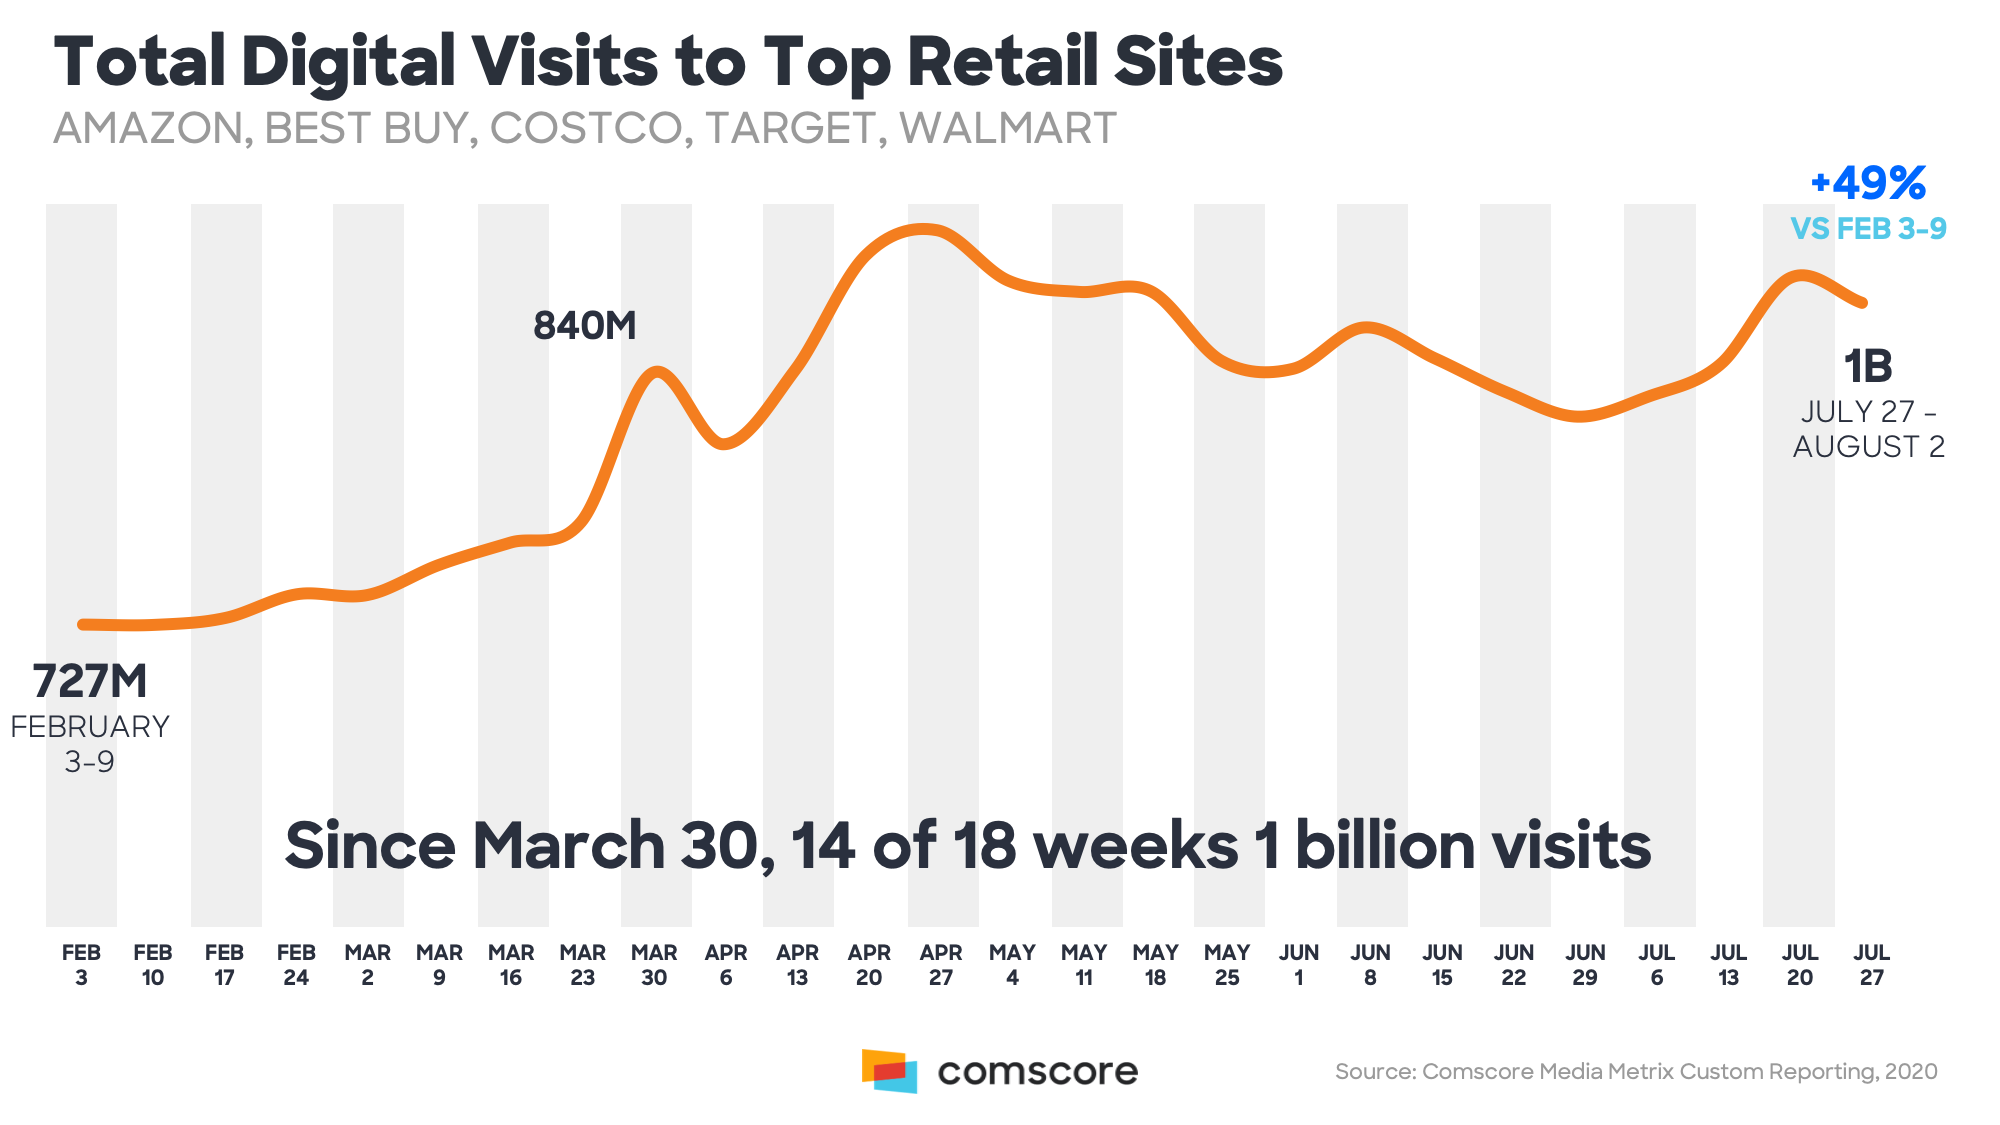 Total Digital Visits To Top Retail Sites